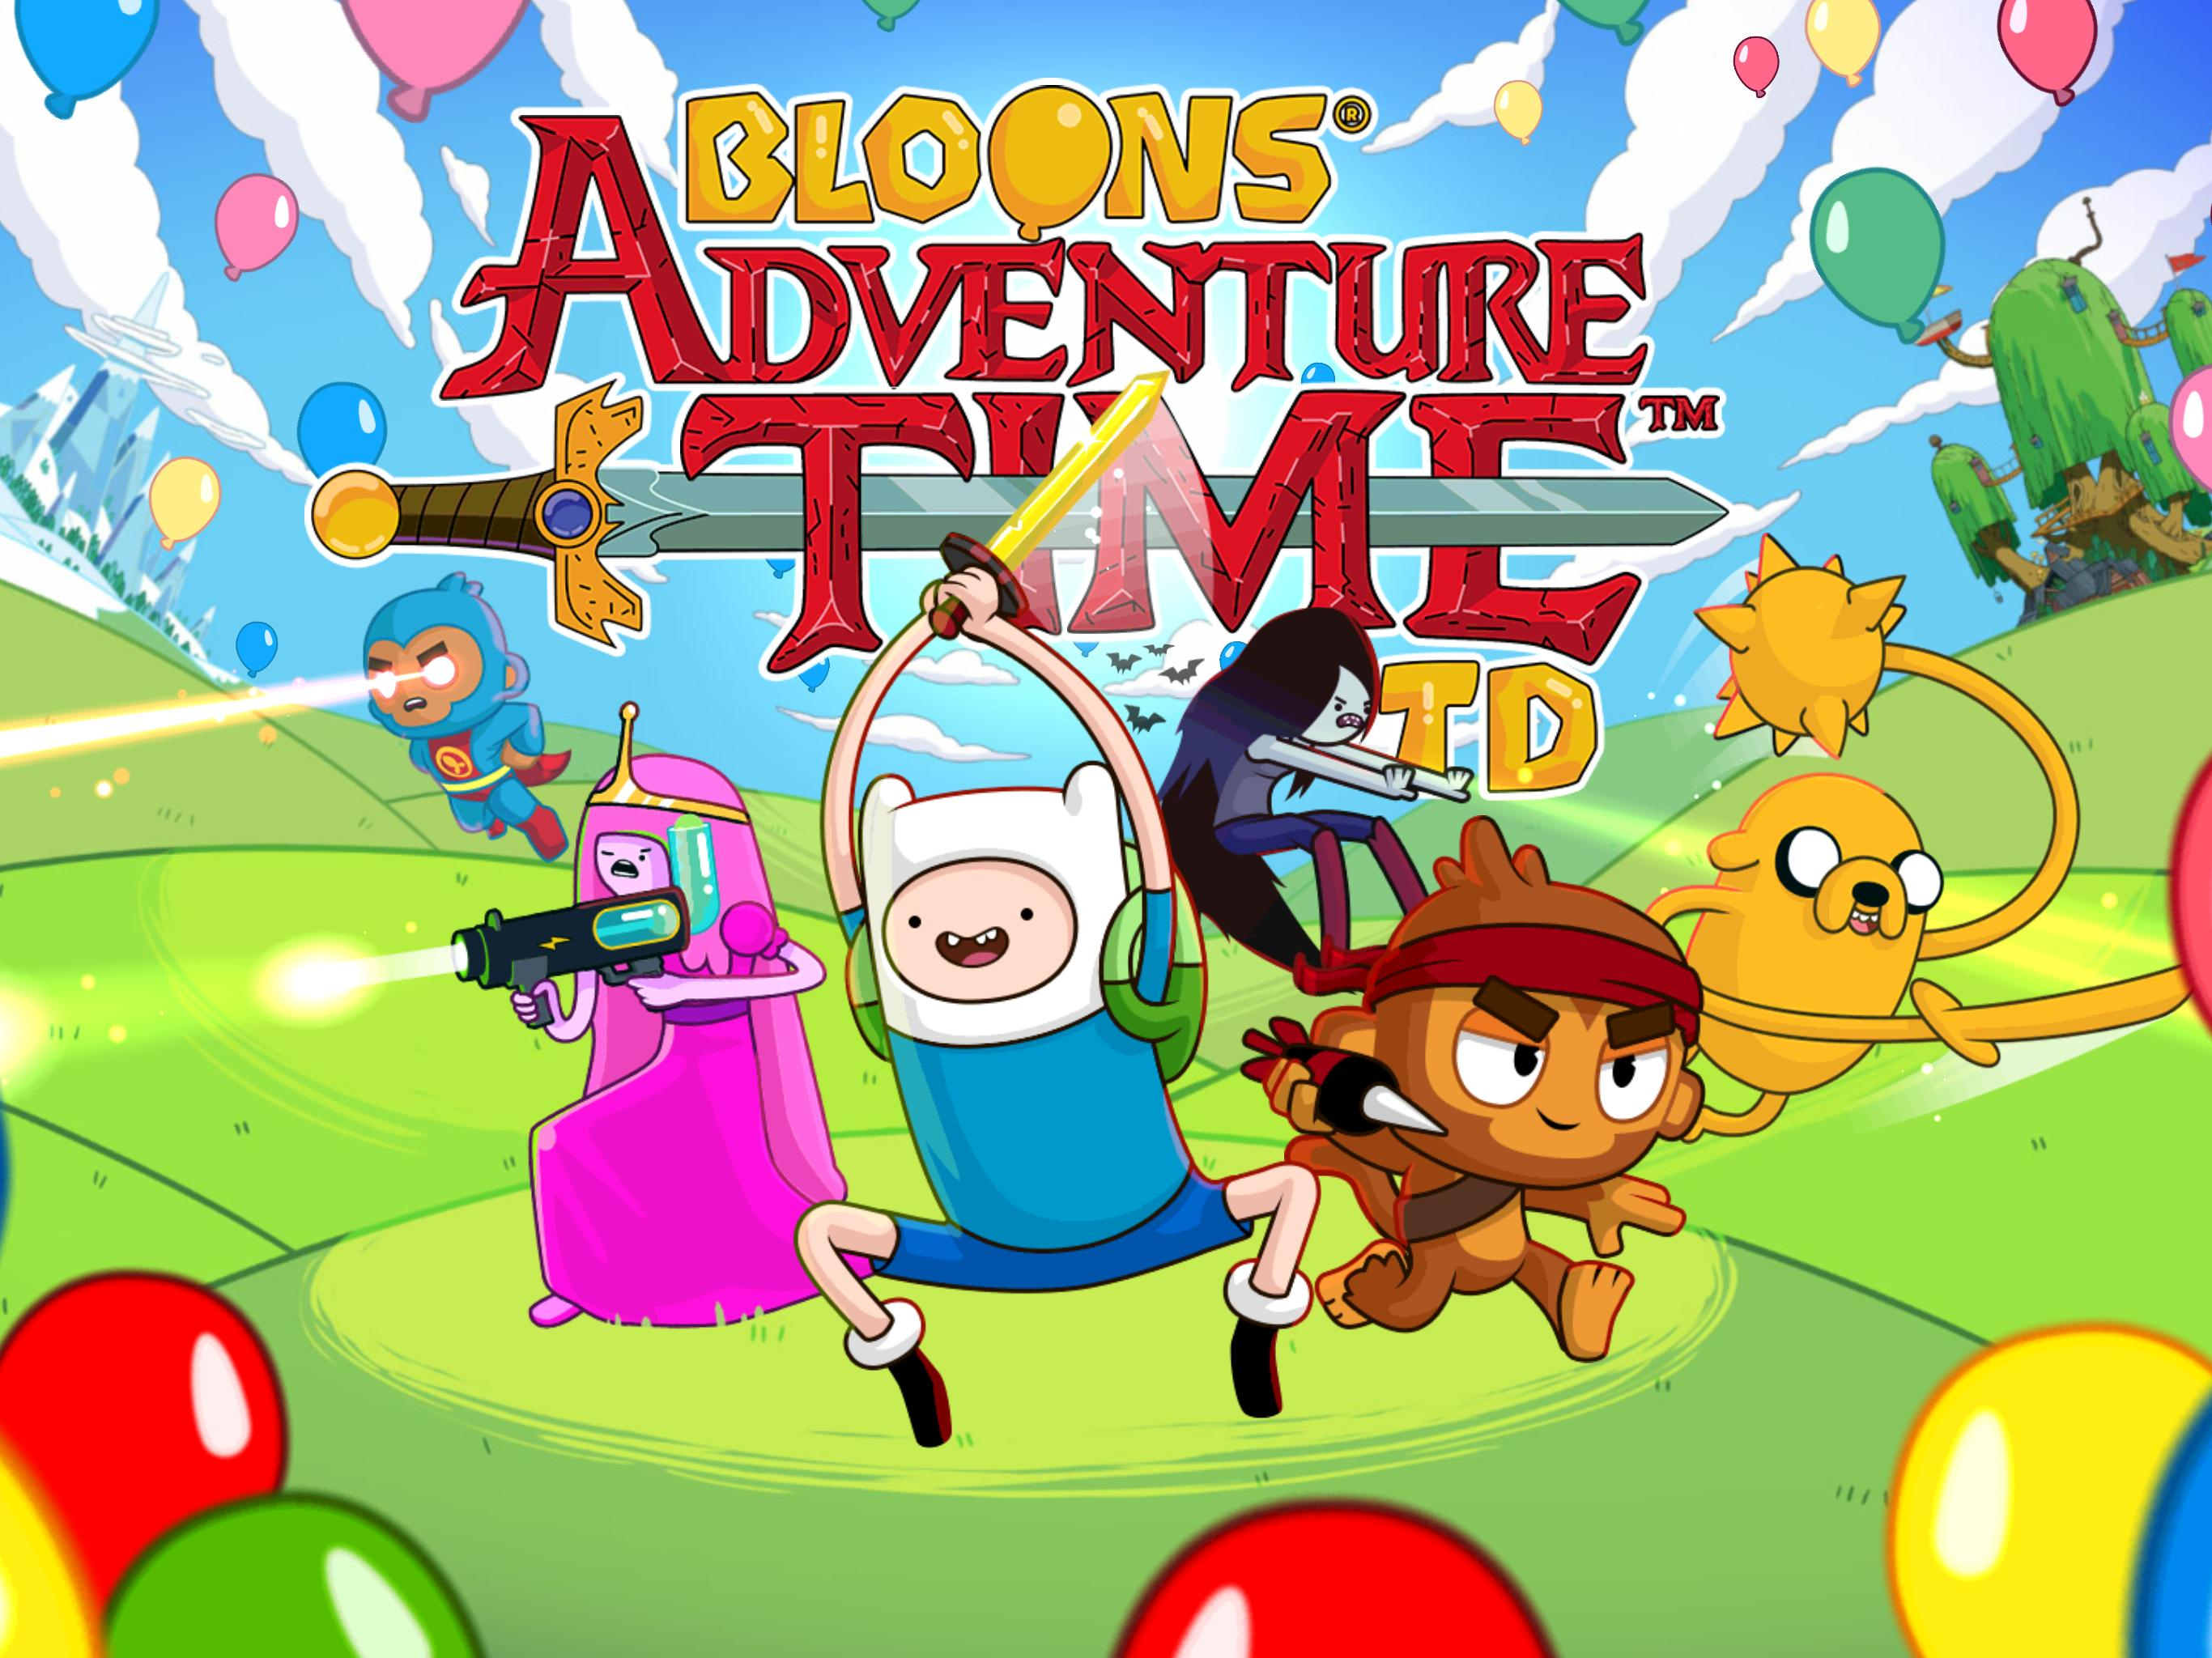 Bloons Adventure Time TD for Android - APK Download